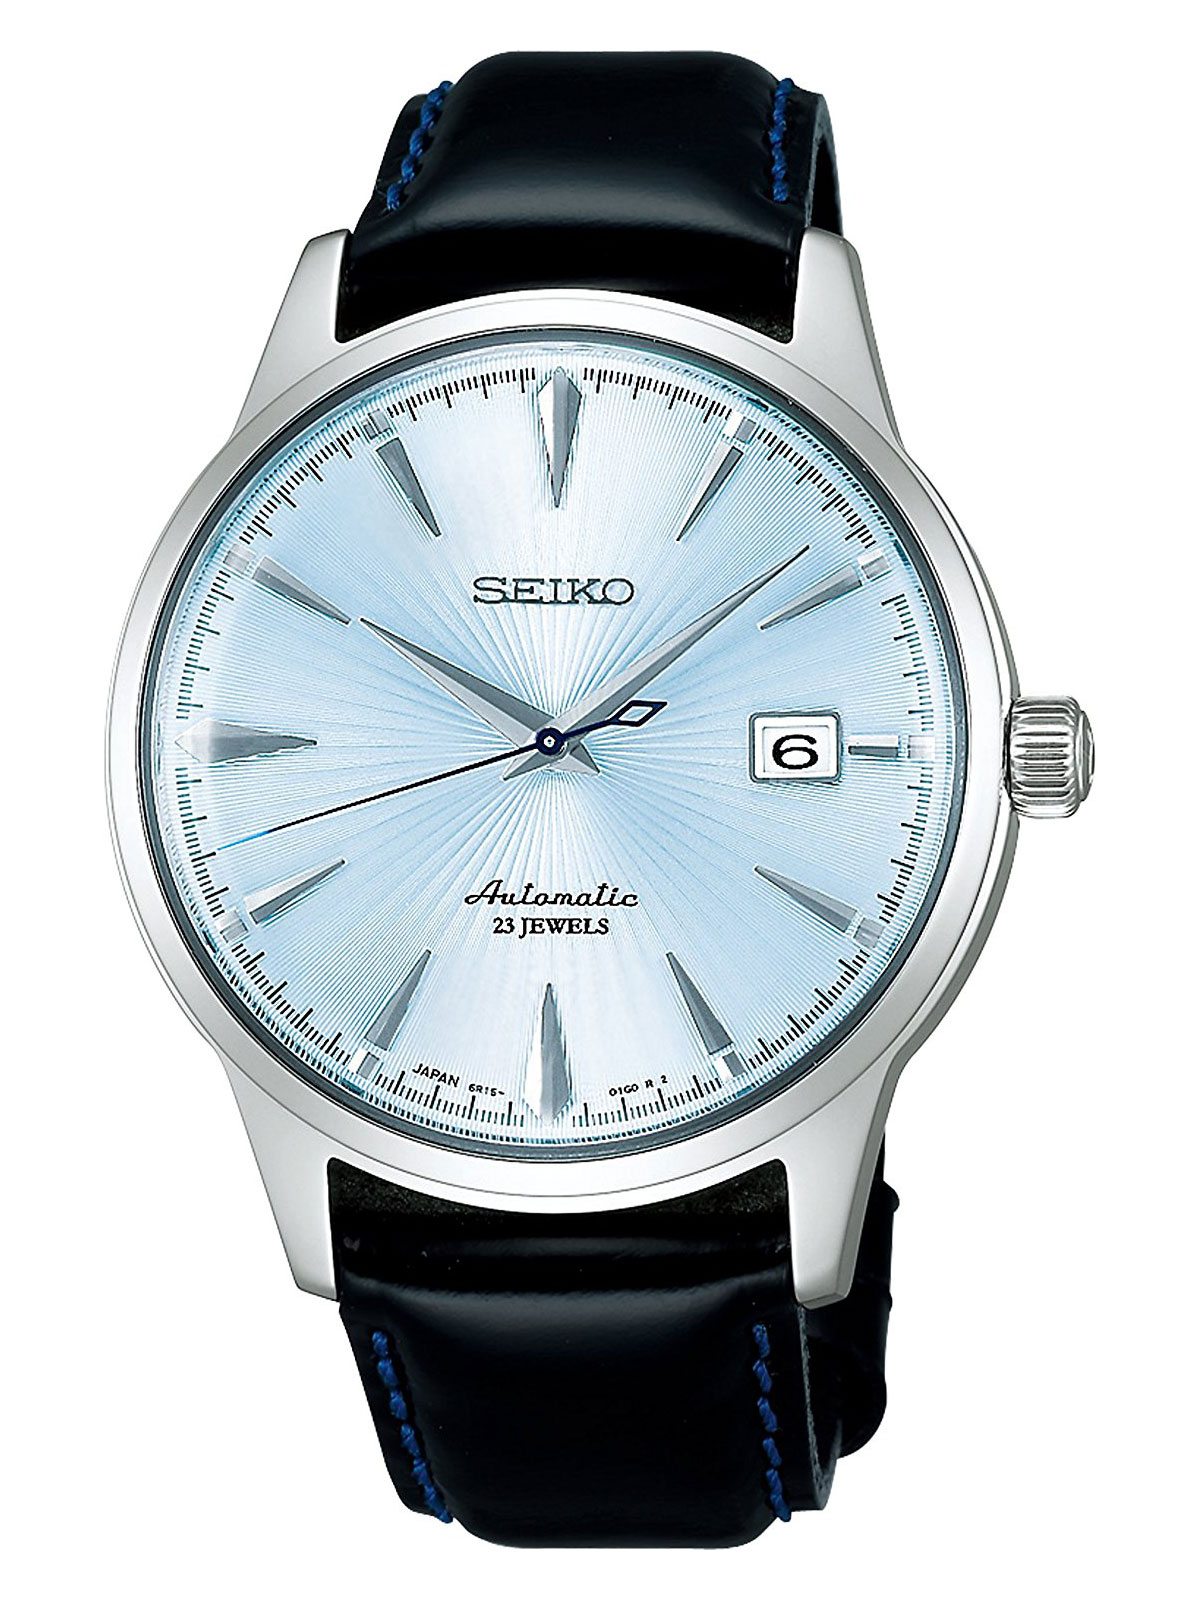 Seiko Cocktail Time Automatic